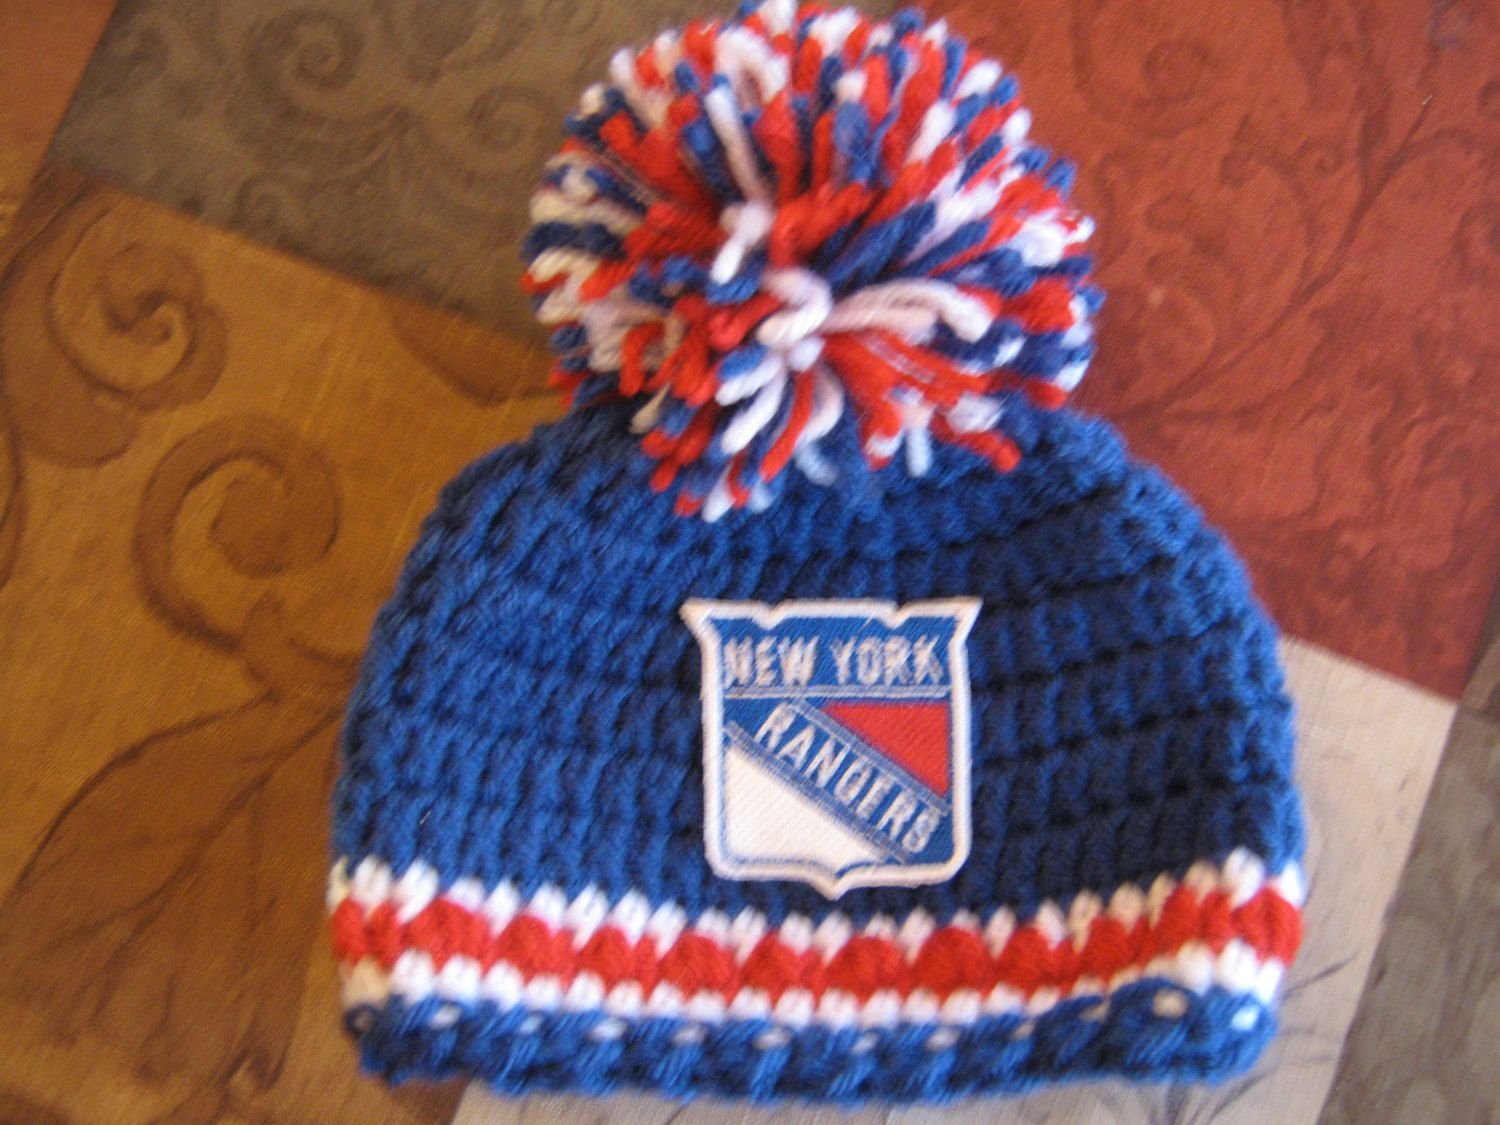 bbf5853f3 Crochet Beanie Baby Hat (New York Rangers) Embroidered Logo - Blue ...